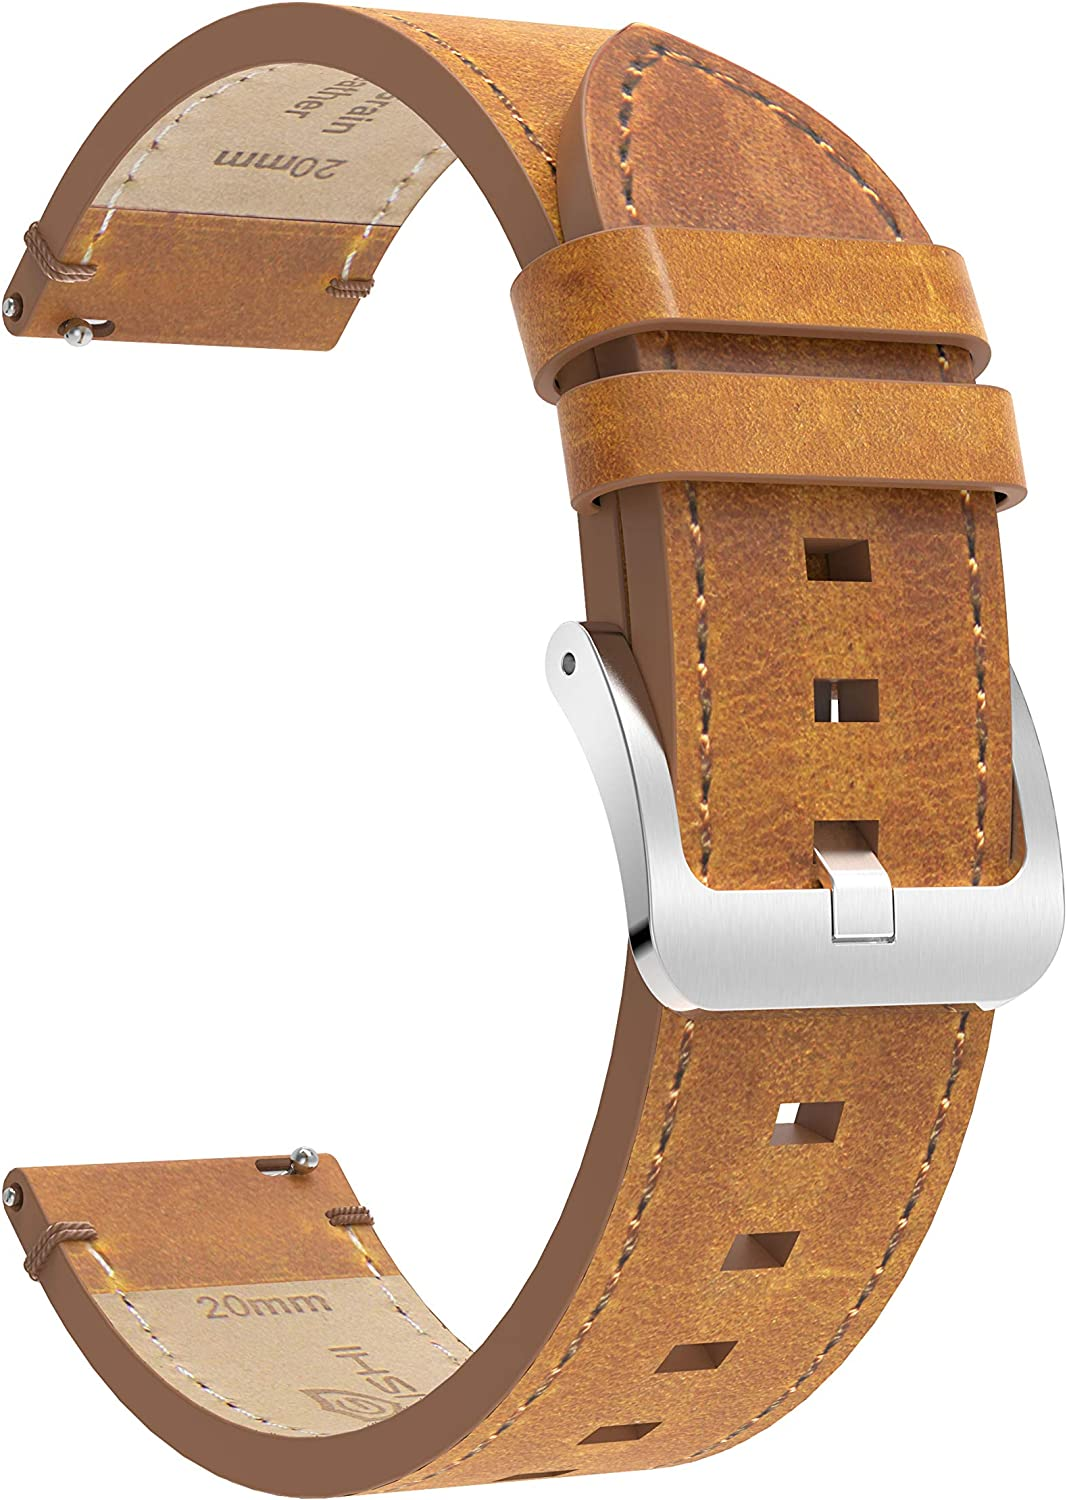 BaiHui Quick Release Leather Watch Band - Top Leather Watch Band Compatible for Samsung Galaxy Watch,Choice of Width 20mm, 22mm Watch Strap for Men and Women - Brown 81EKlmof6PL